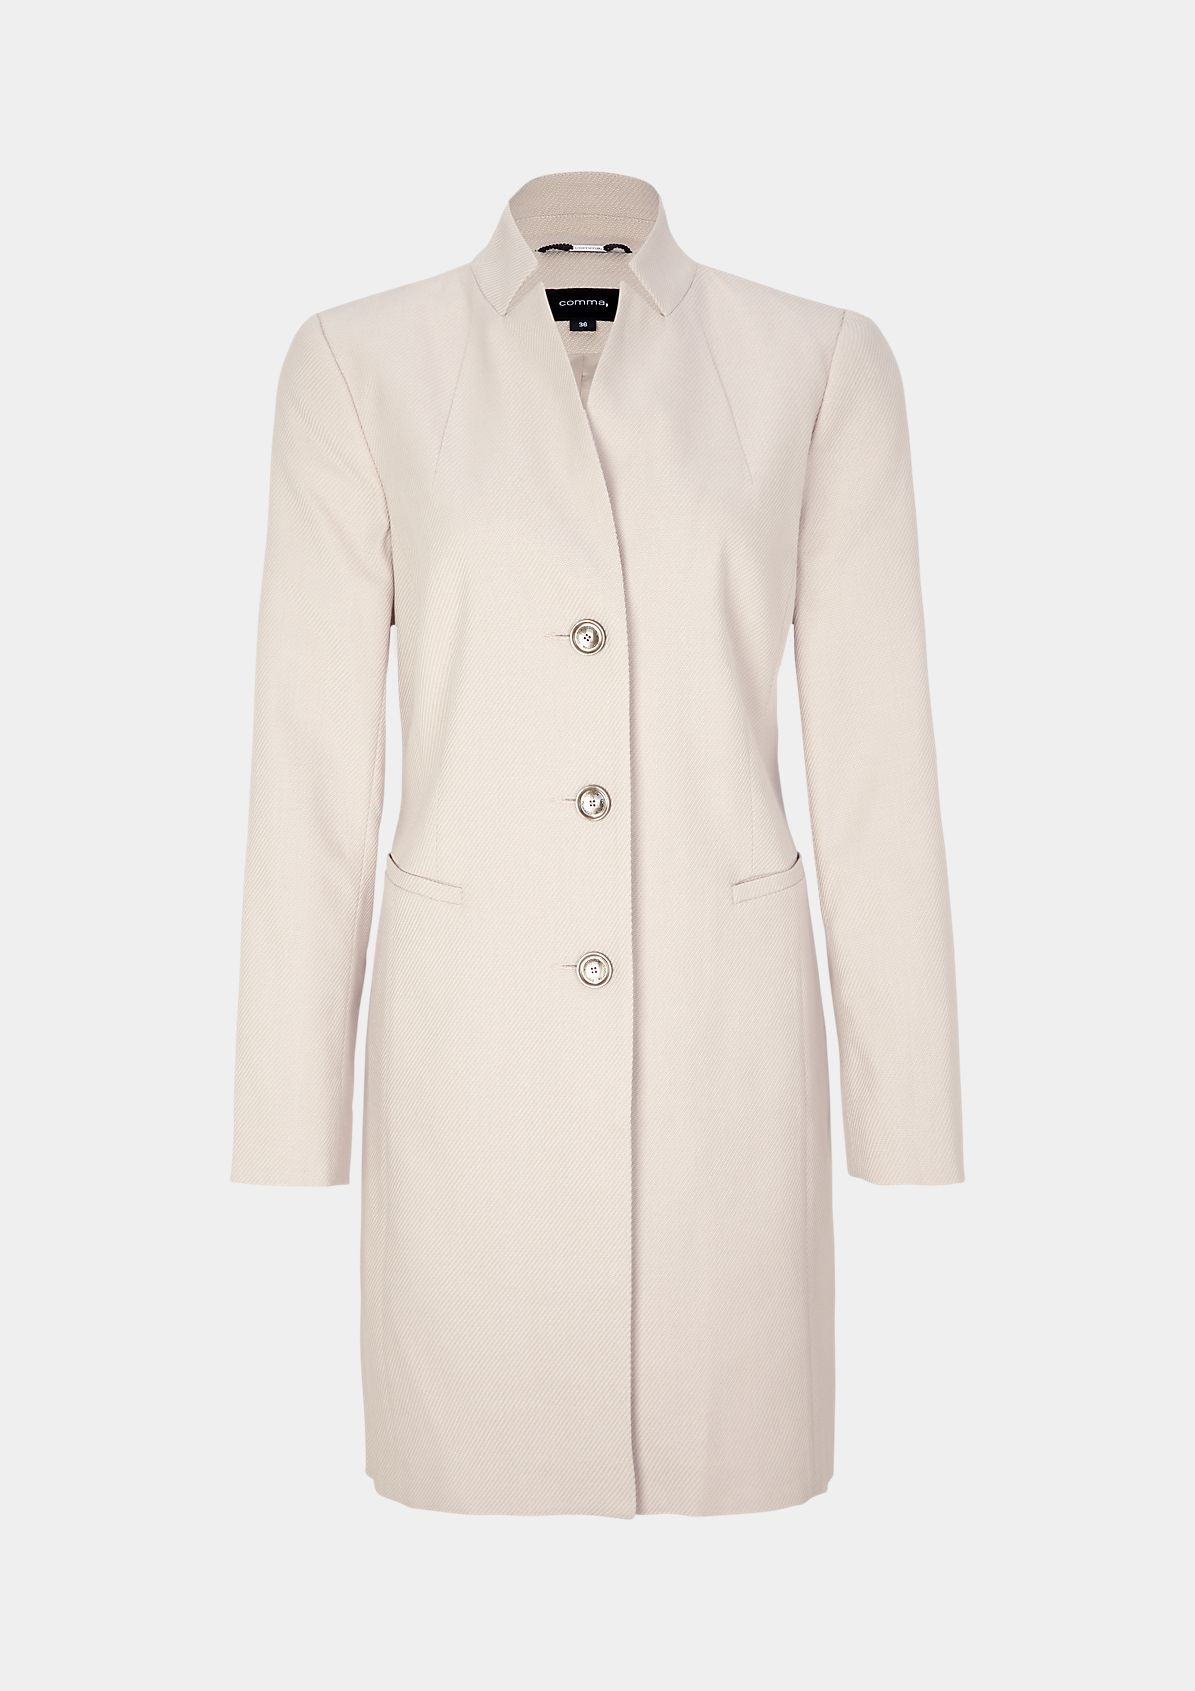 Slim-fitting frock coat in a linen look from comma